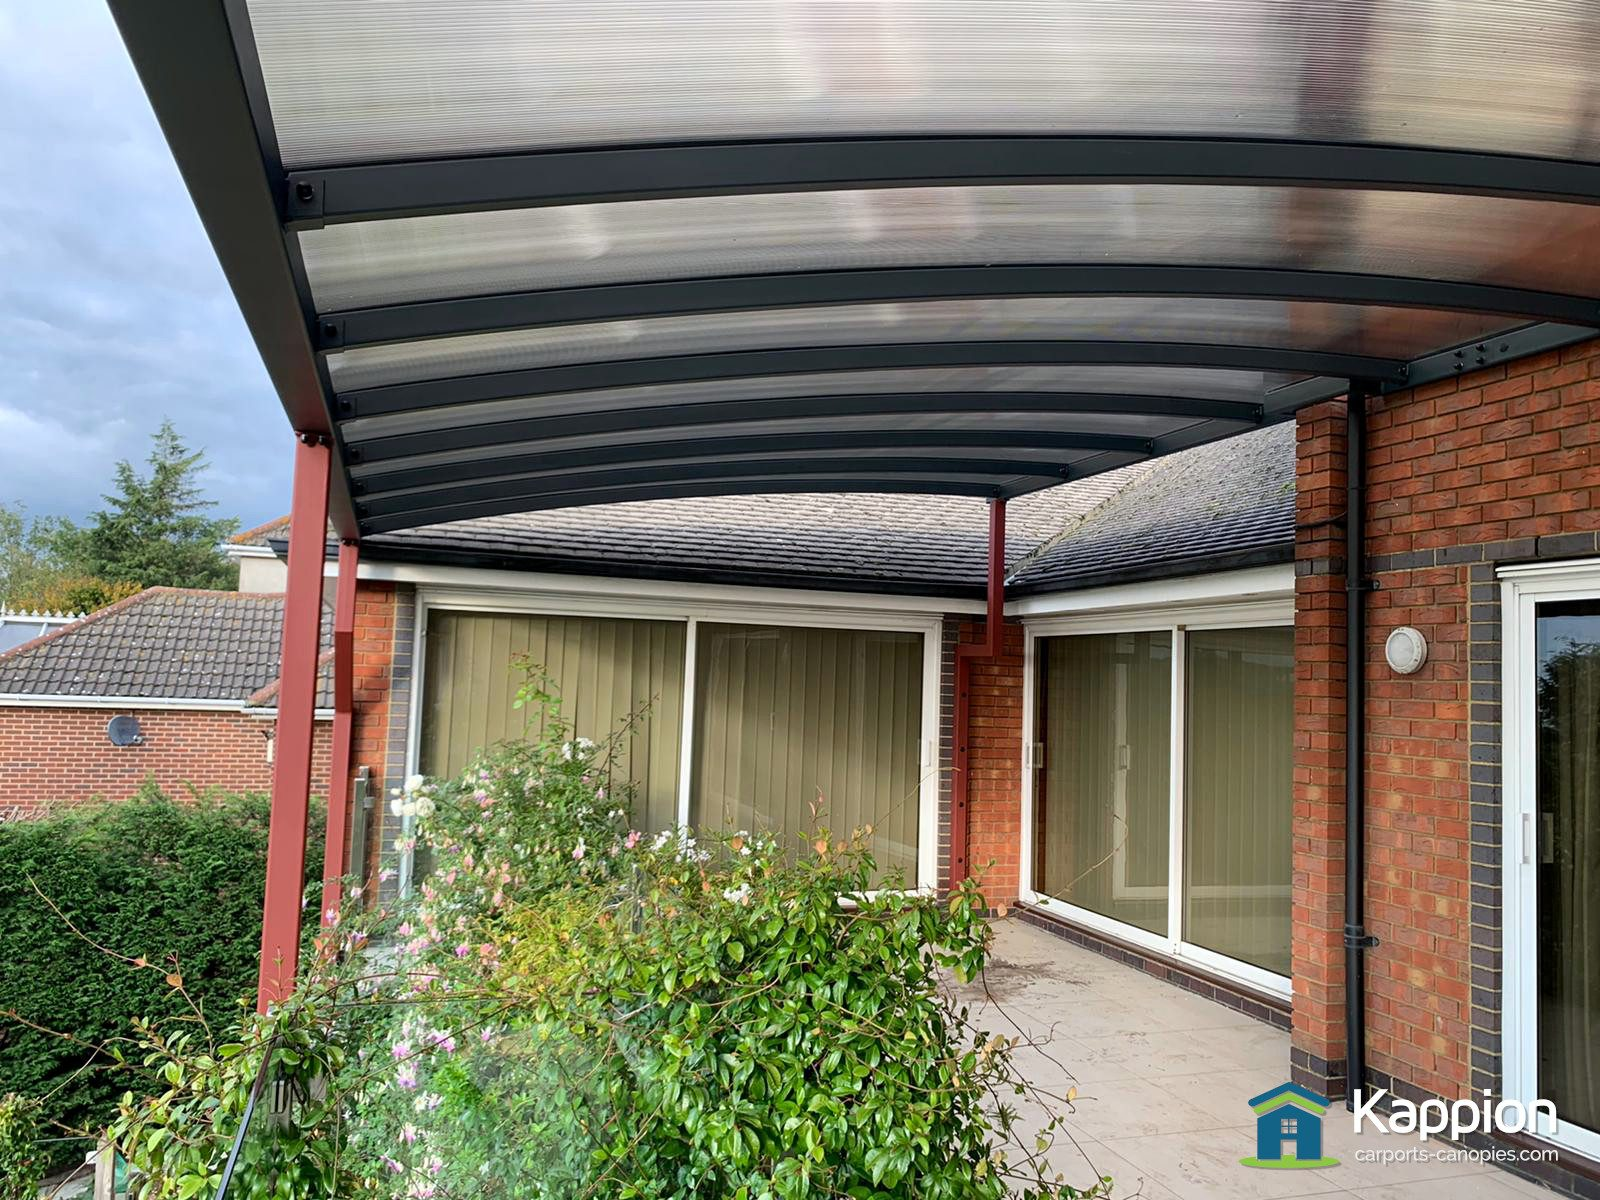 DavidKnight-Patio-Canopy-001